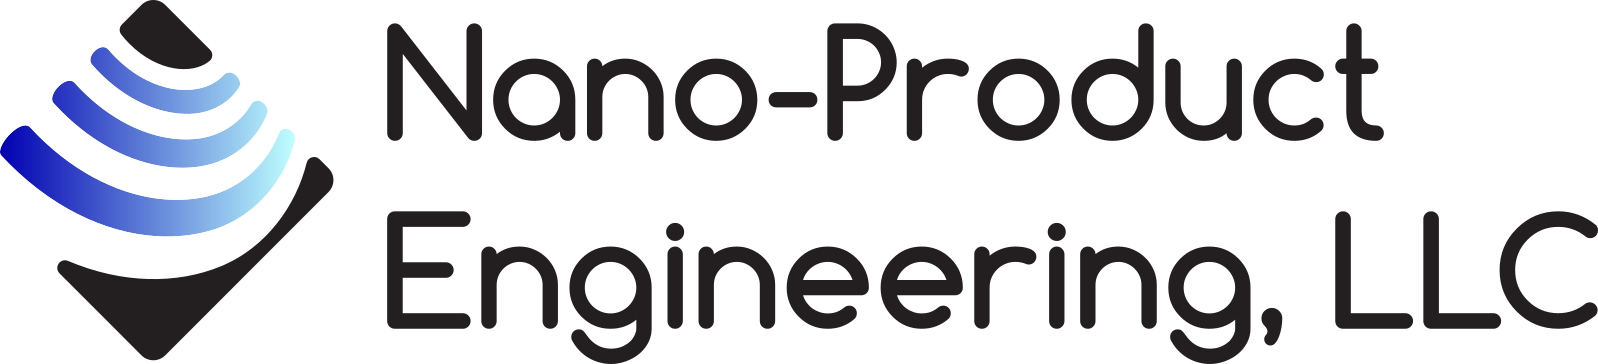 Nano-Product Engineering, LLC